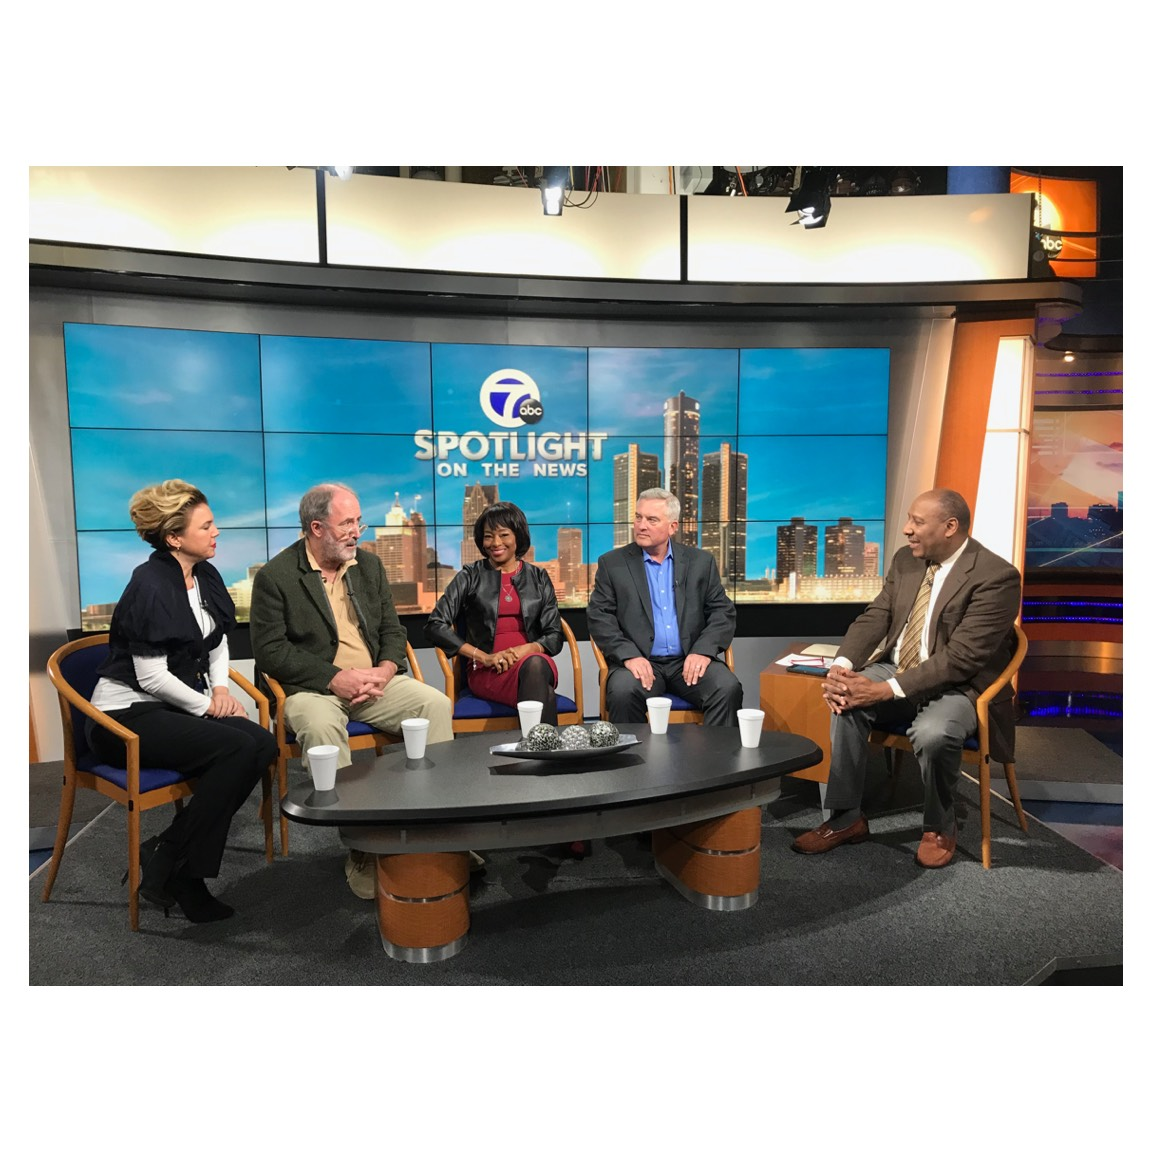 DETROITISIT FOUNDER IVANA KALAFATIC ON CHANNEL 7 SPOTLIGHT ON SUSTAINABILITY